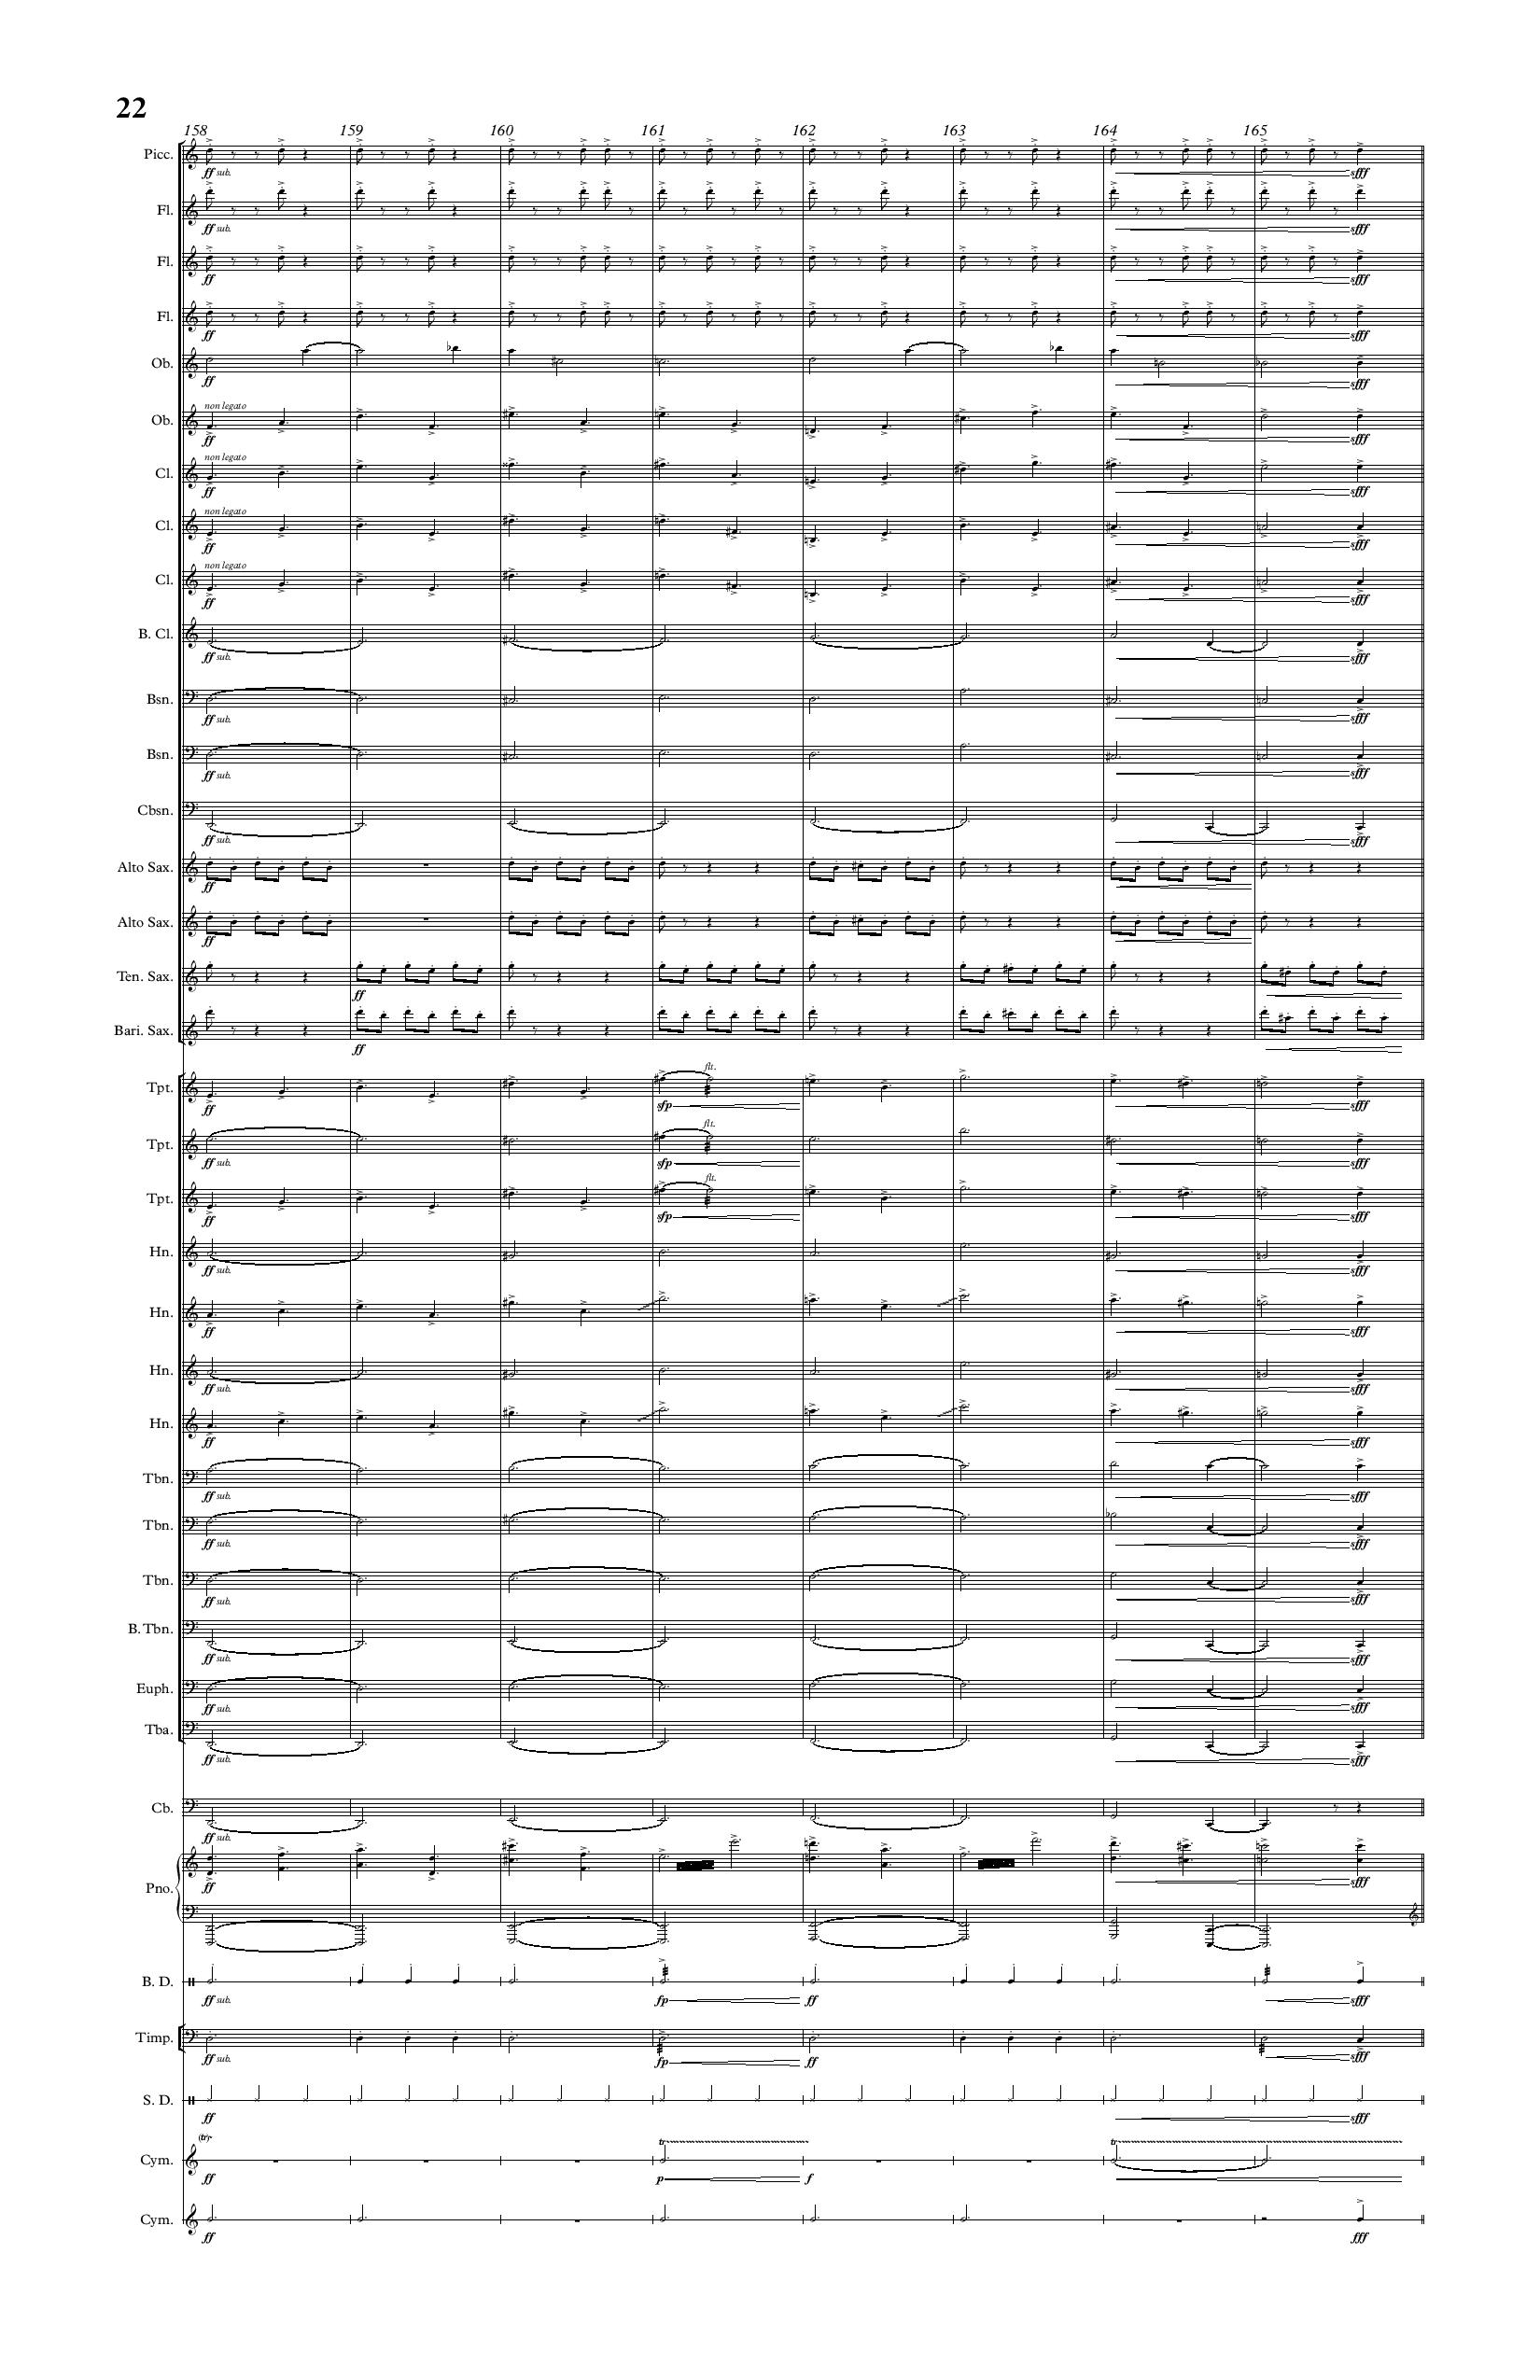 Rupture Full Transposed Score - Full Score (1)-page-022